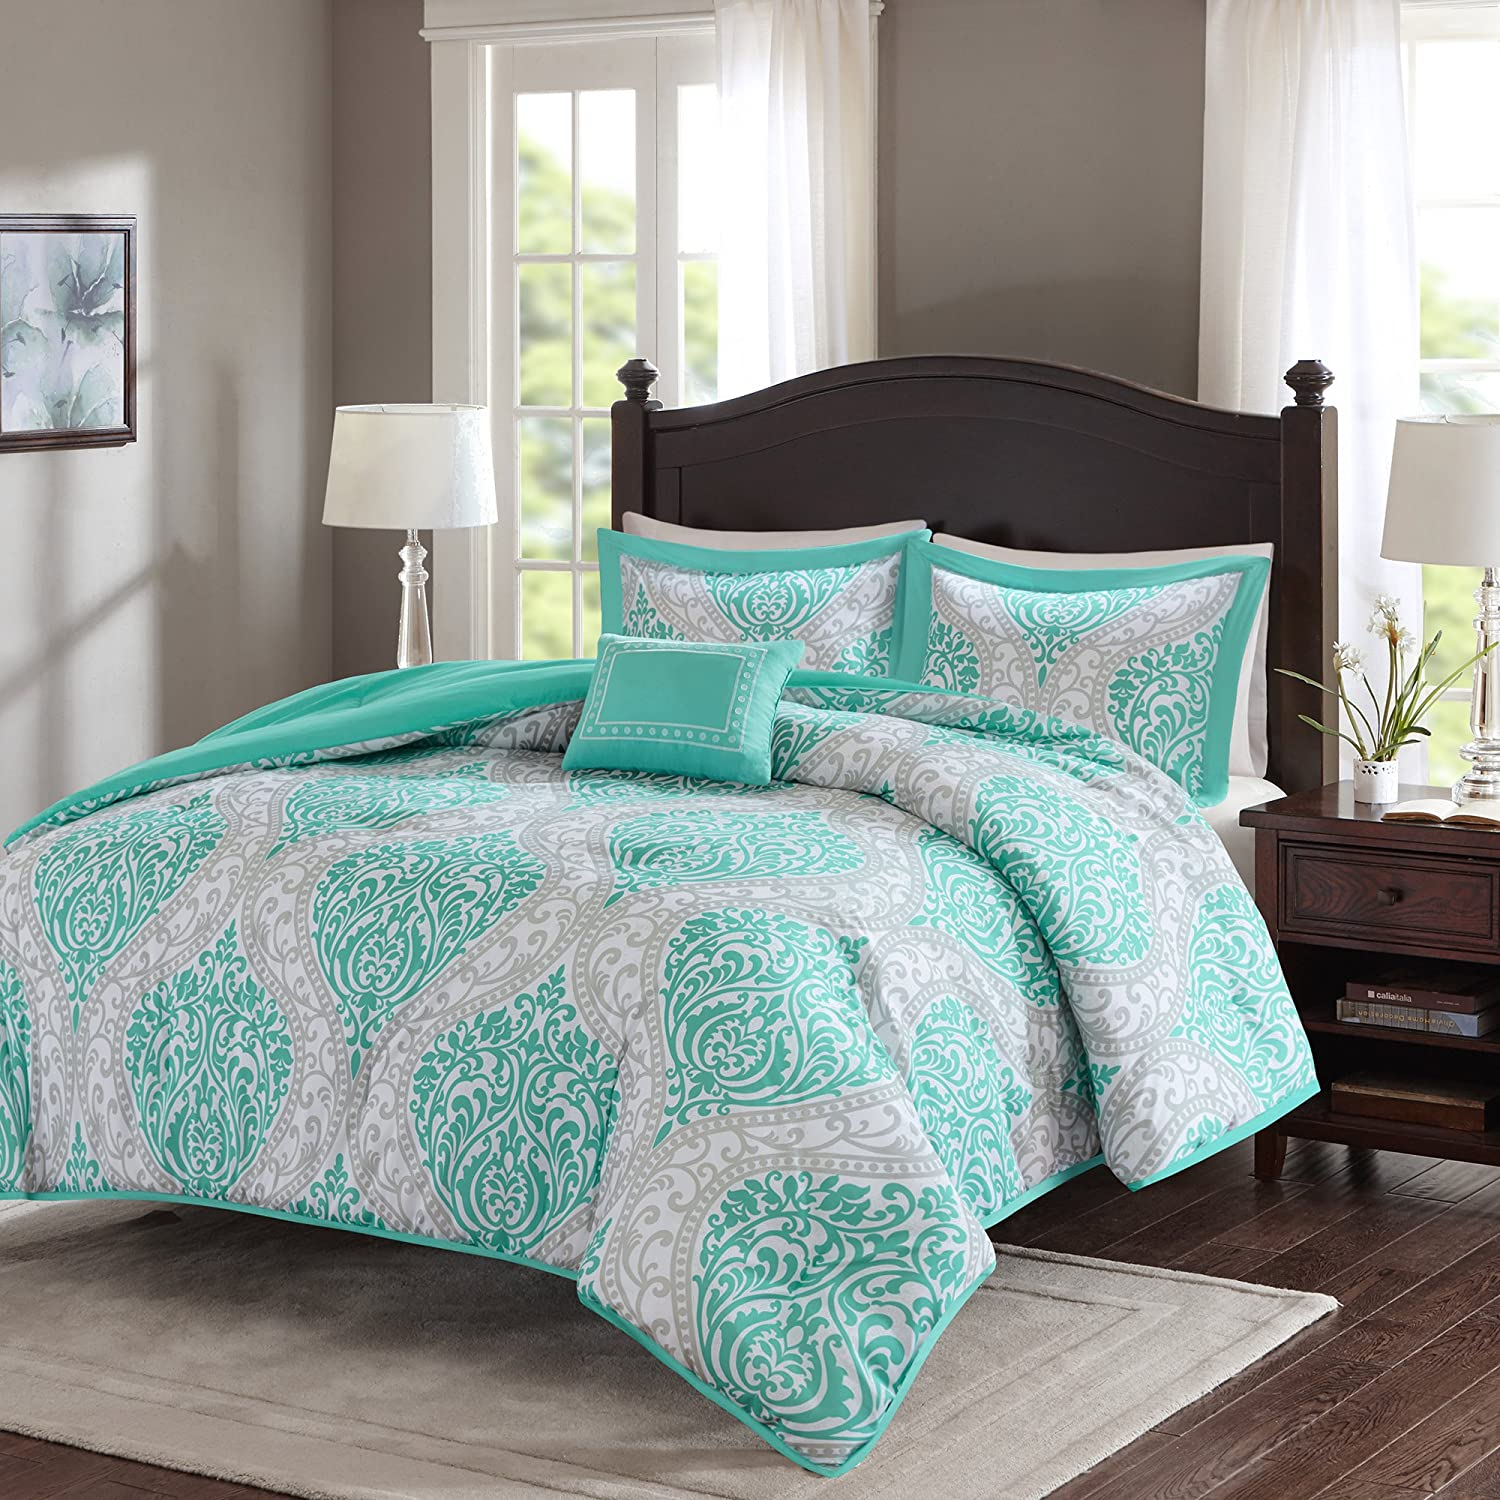 Comfort Spaces - Coco Comforter Set - 4 Piece - Teal and Grey